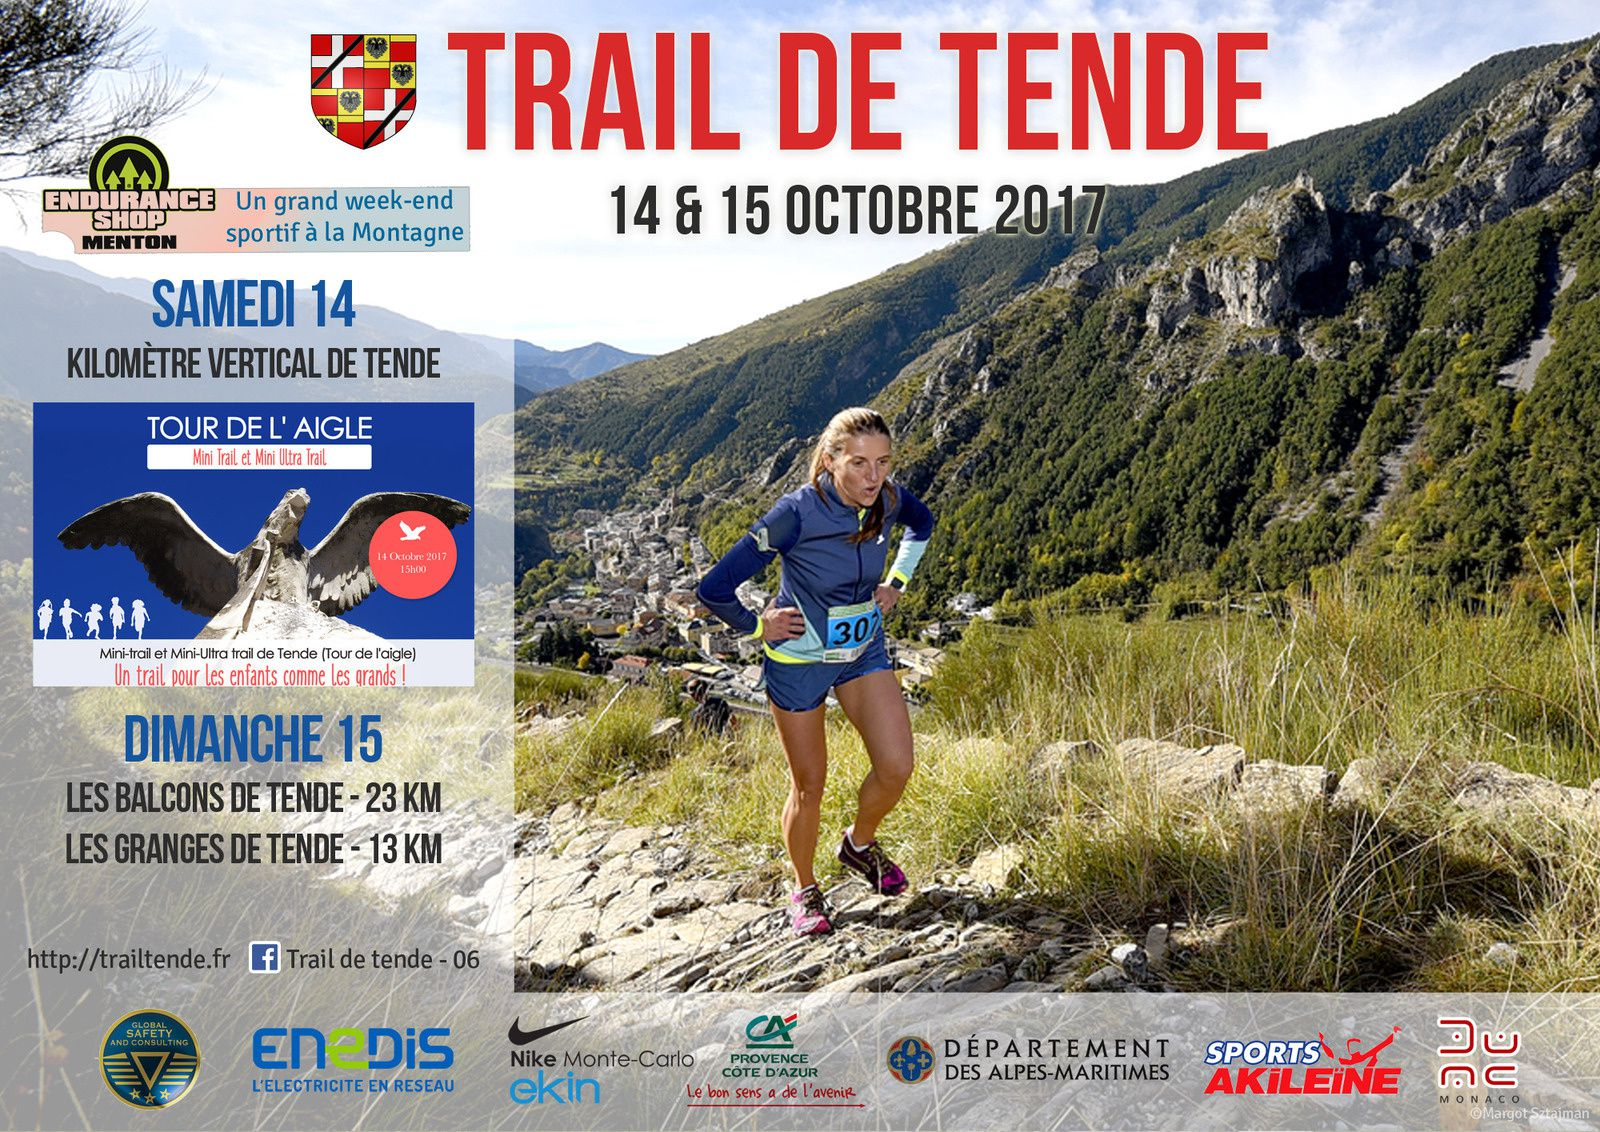 Trails de TENDE - 14 & 15 Octobre 2017